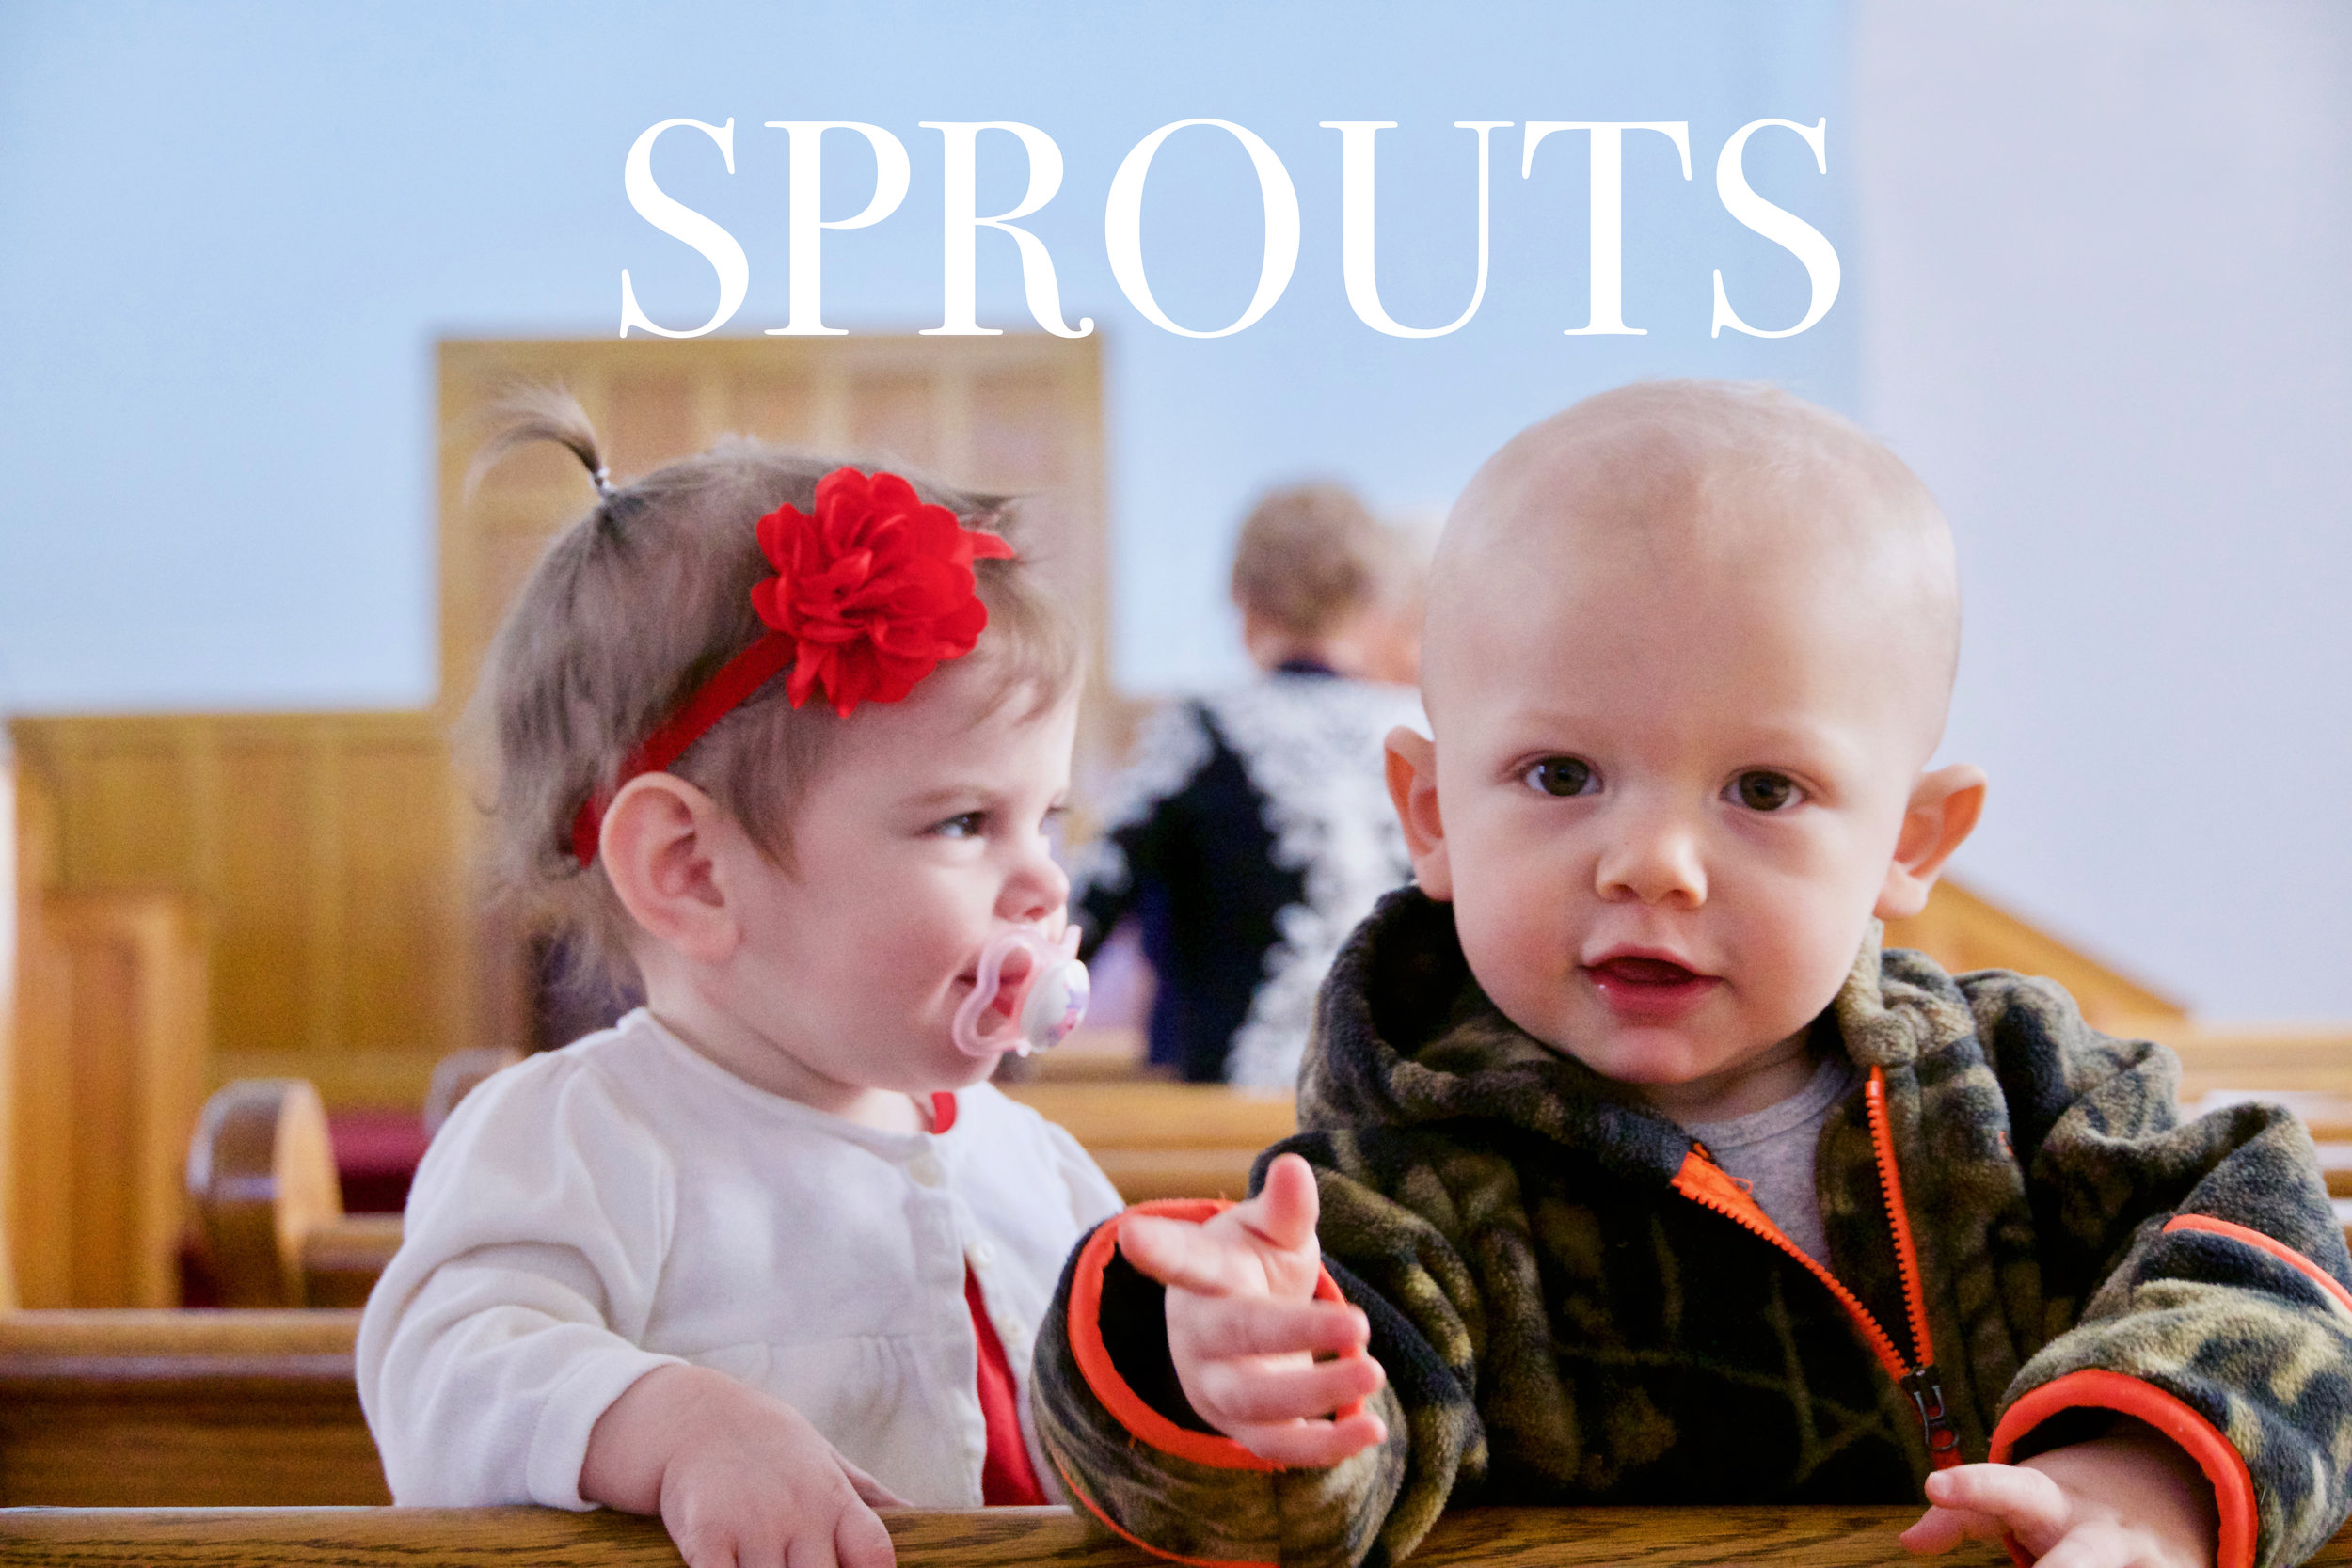 sprouts_front.jpg